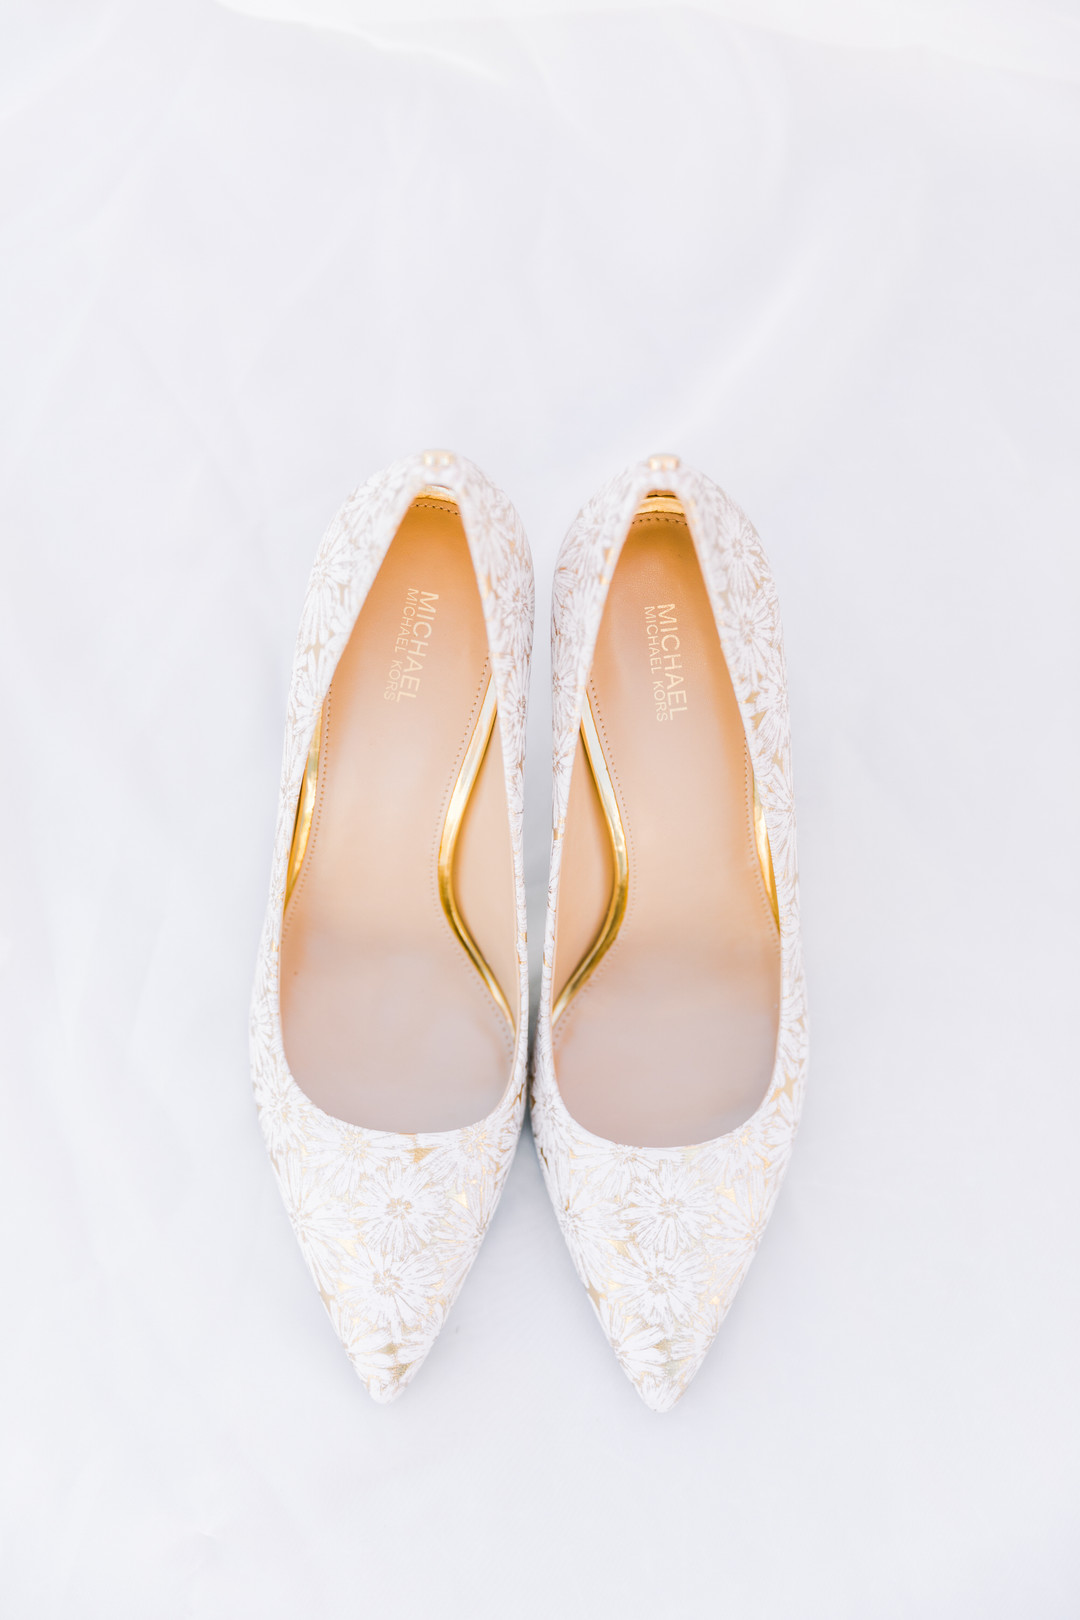 bridal shoes with beautiful gold detailing